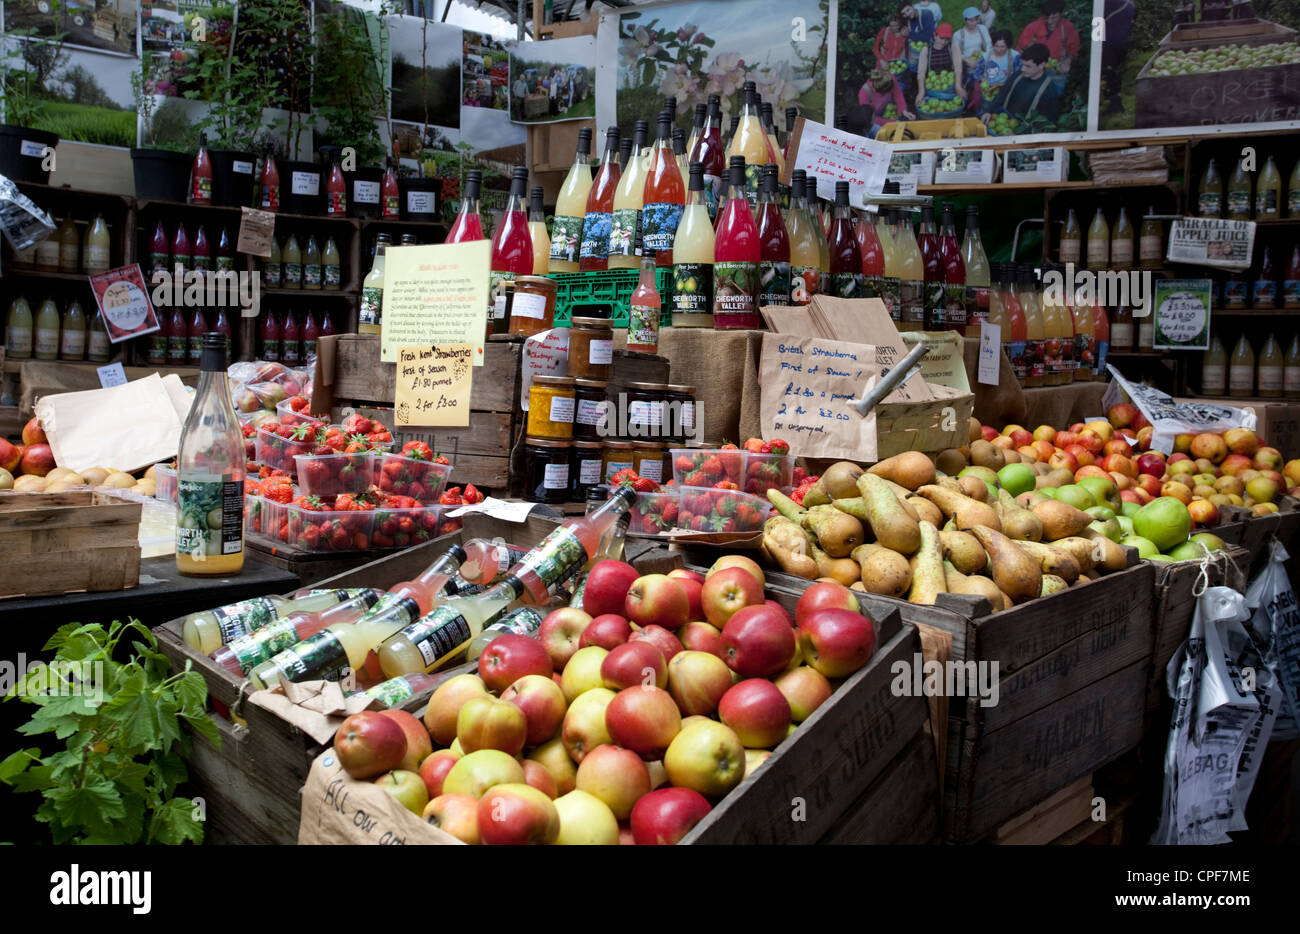 Fruit cider and juice stall, Borough Market, London, England, UK - Stock Image